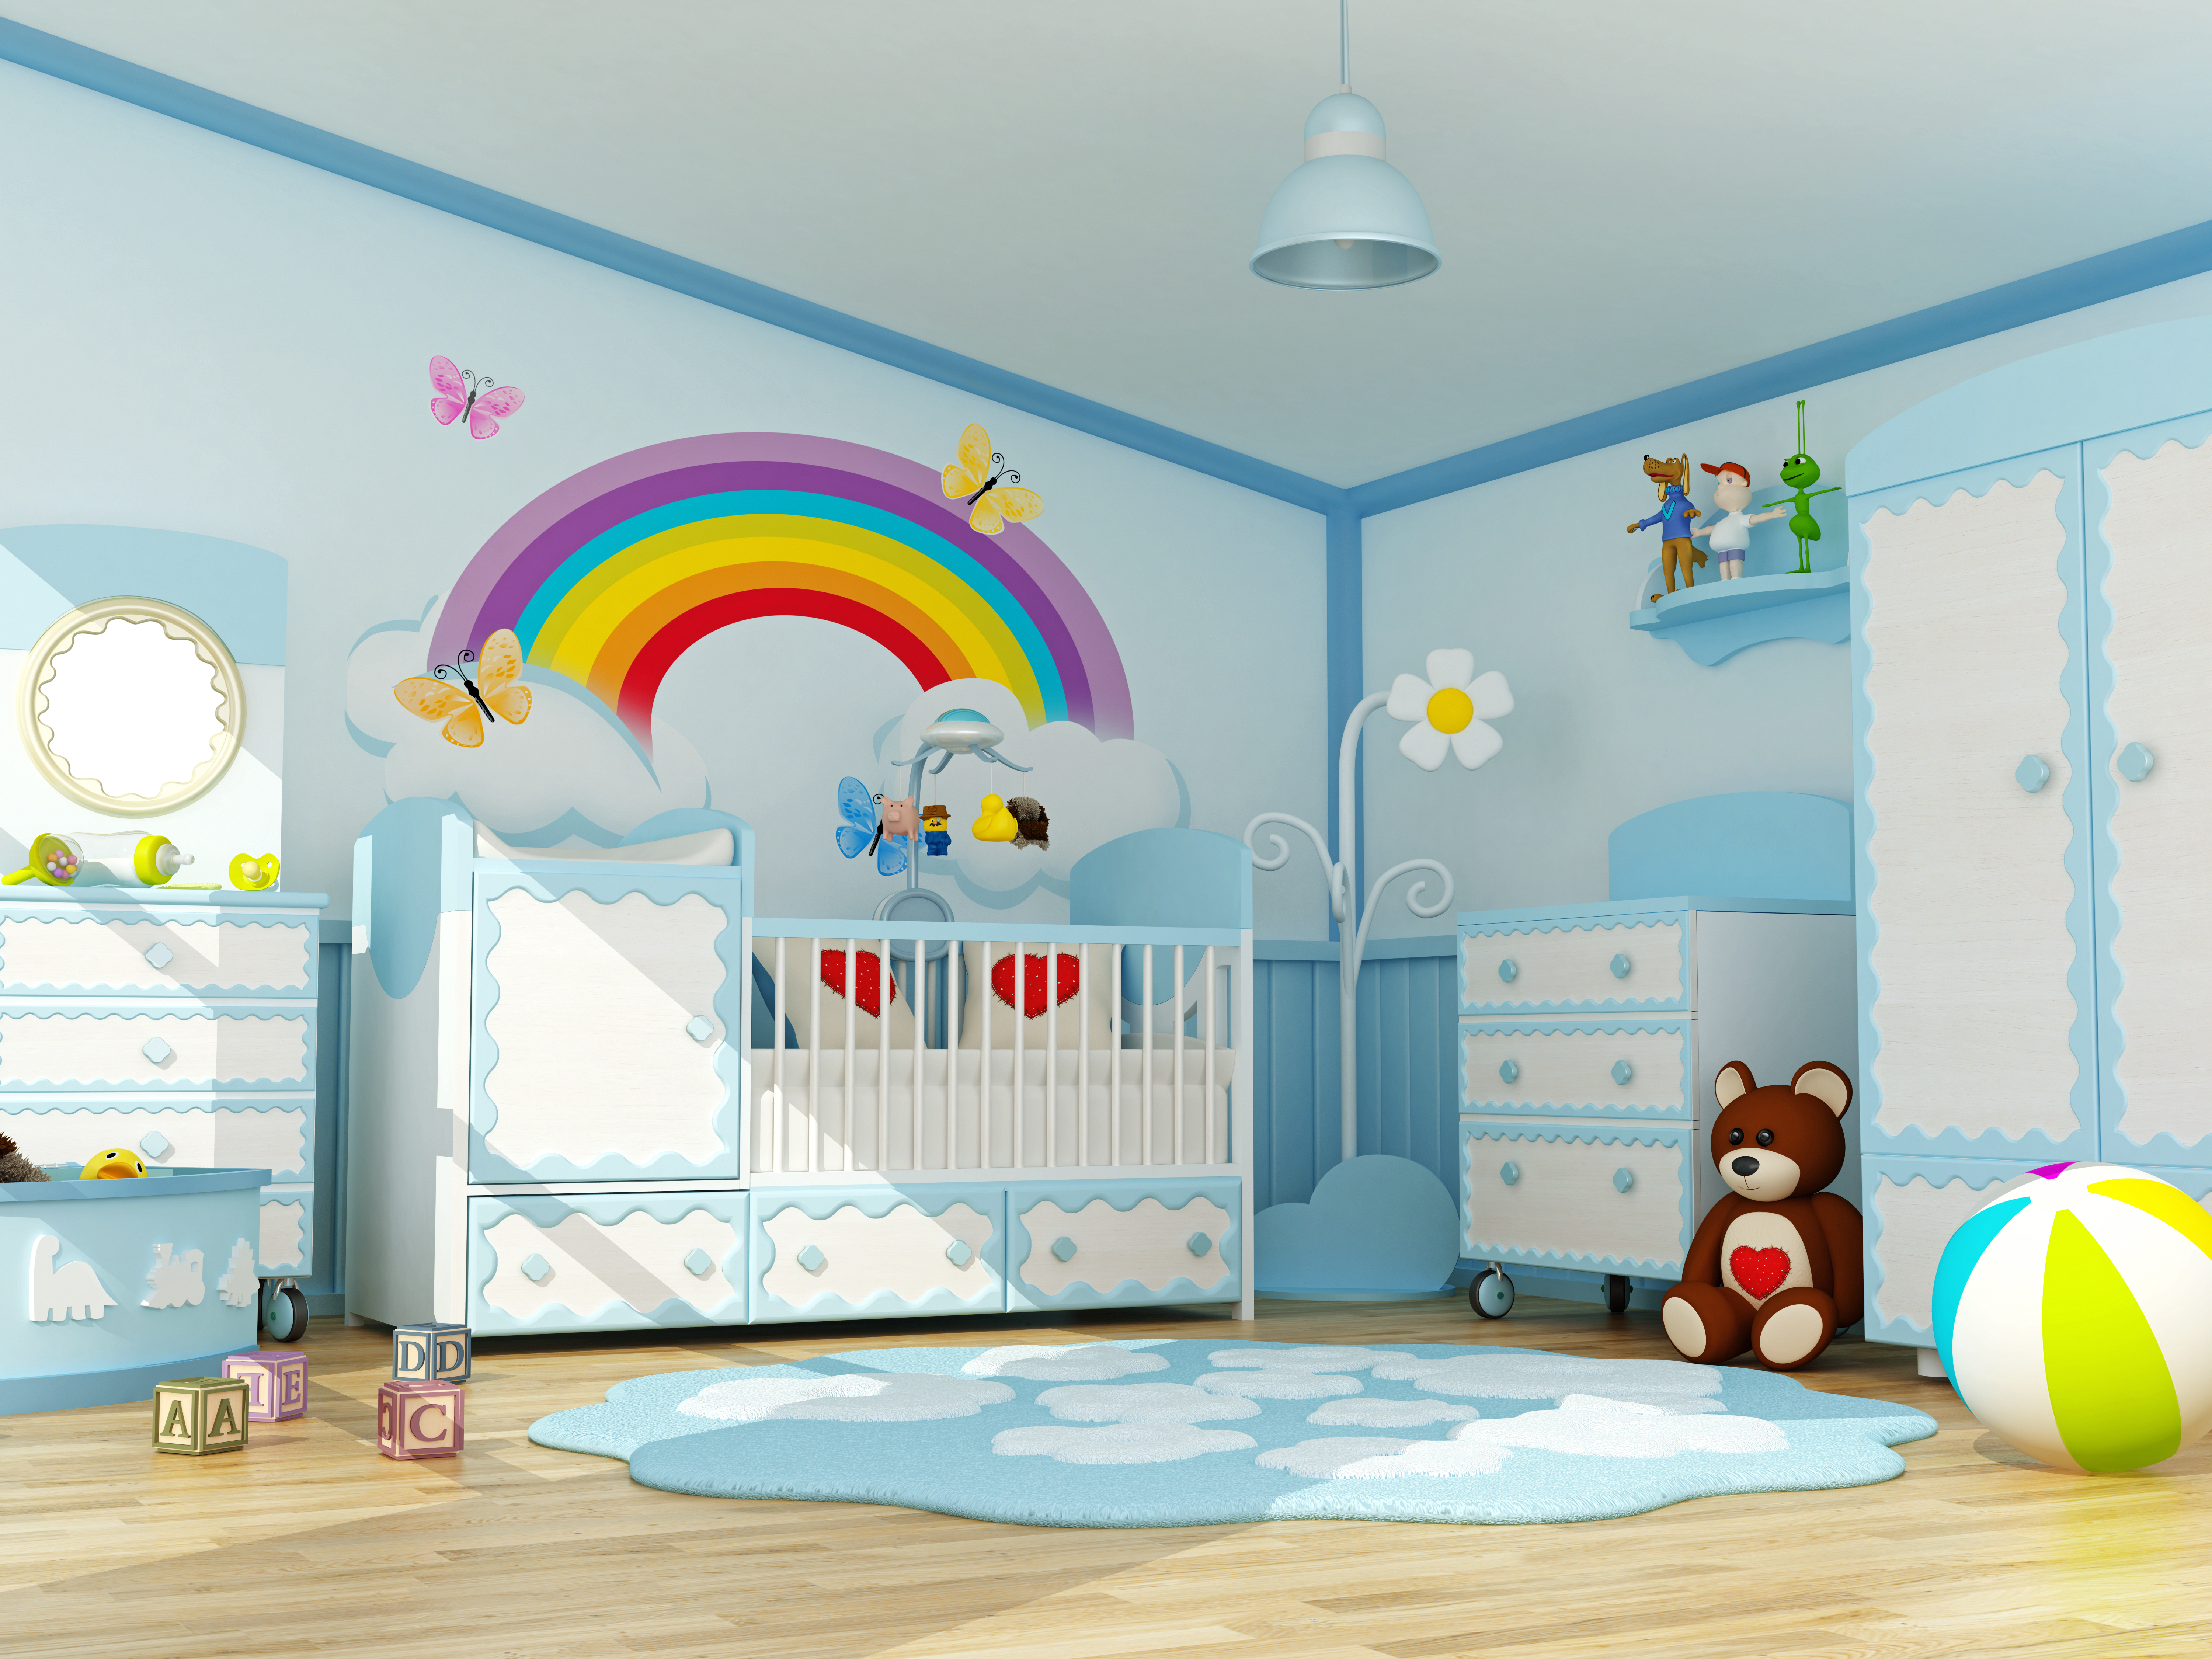 Baby room decorated with blue furnitures waiting for a little boy.Similar: